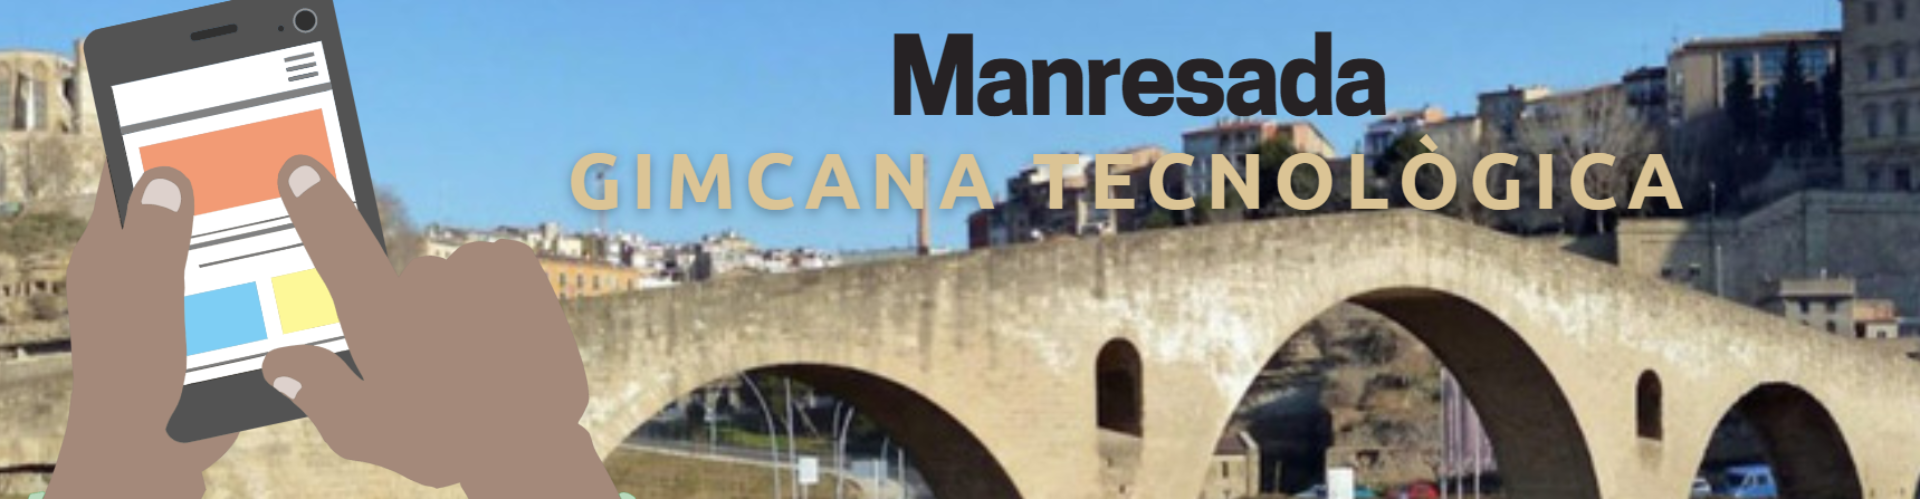 https://www.wmcproject.org/manresa/wp-content/uploads/2020/10/cropped-manresa-2021-3.png